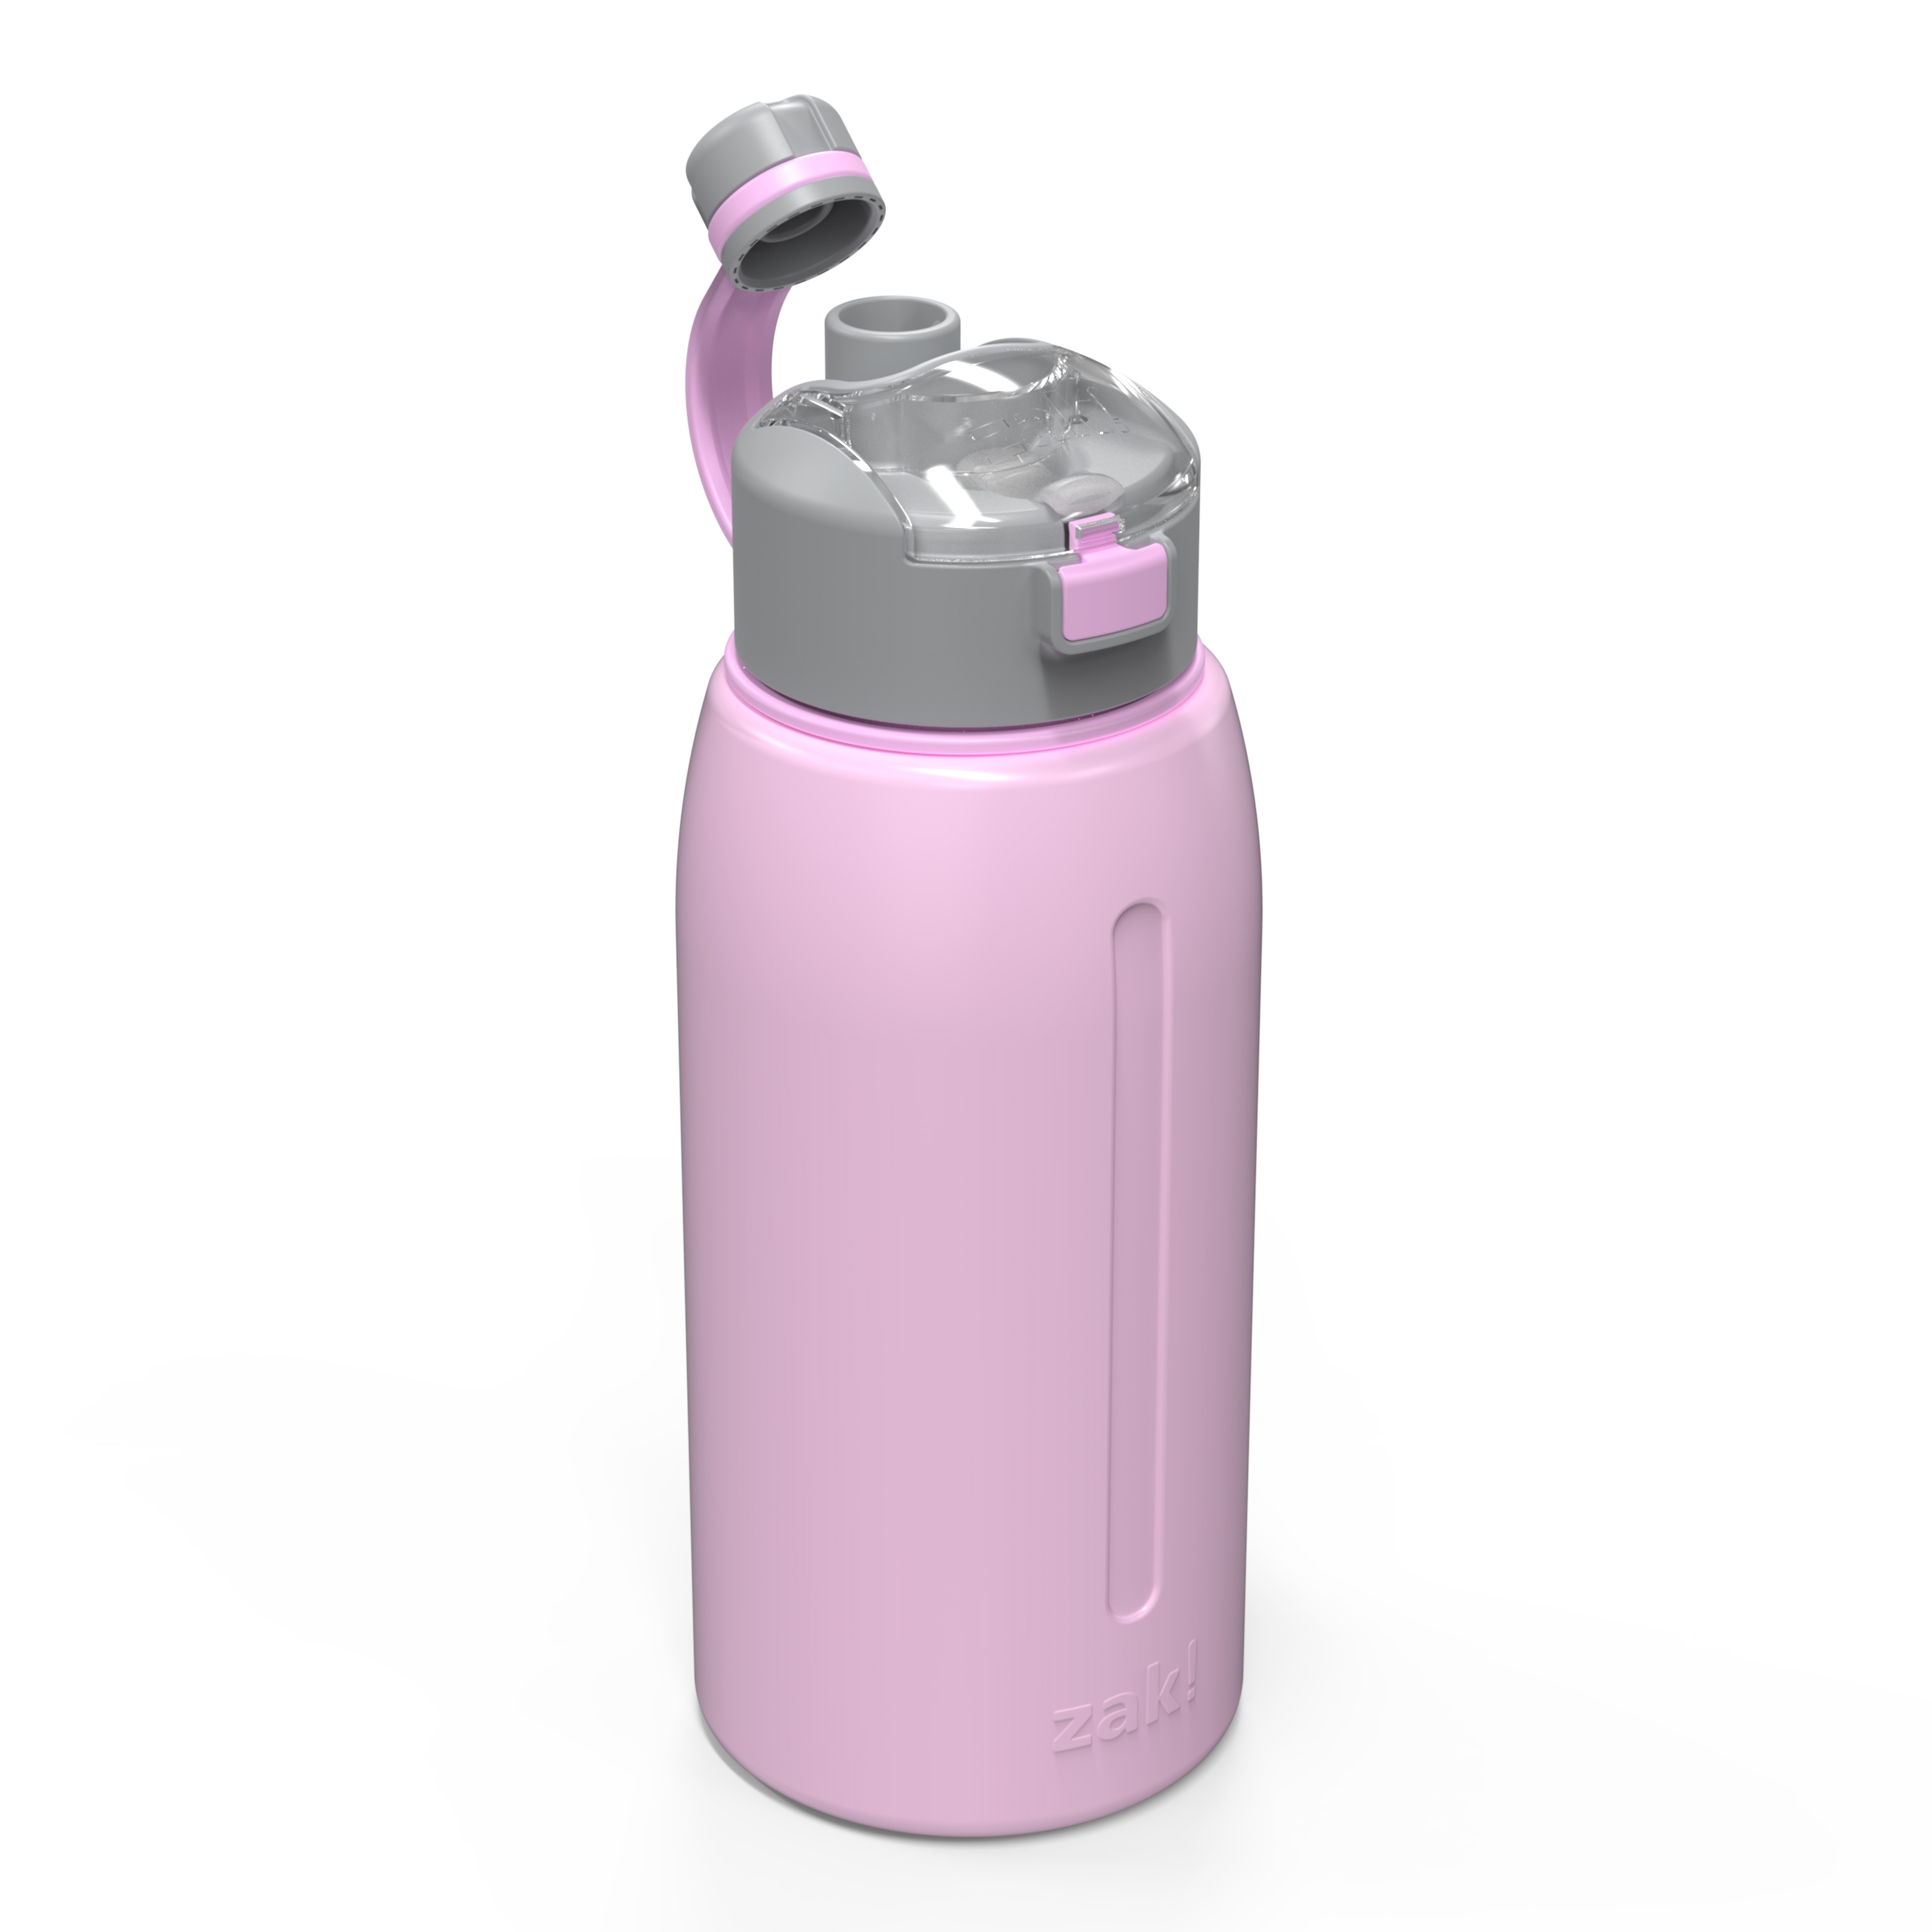 Genesis 32 ounce Vacuum Insulated Stainless Steel Tumbler, Lilac slideshow image 4